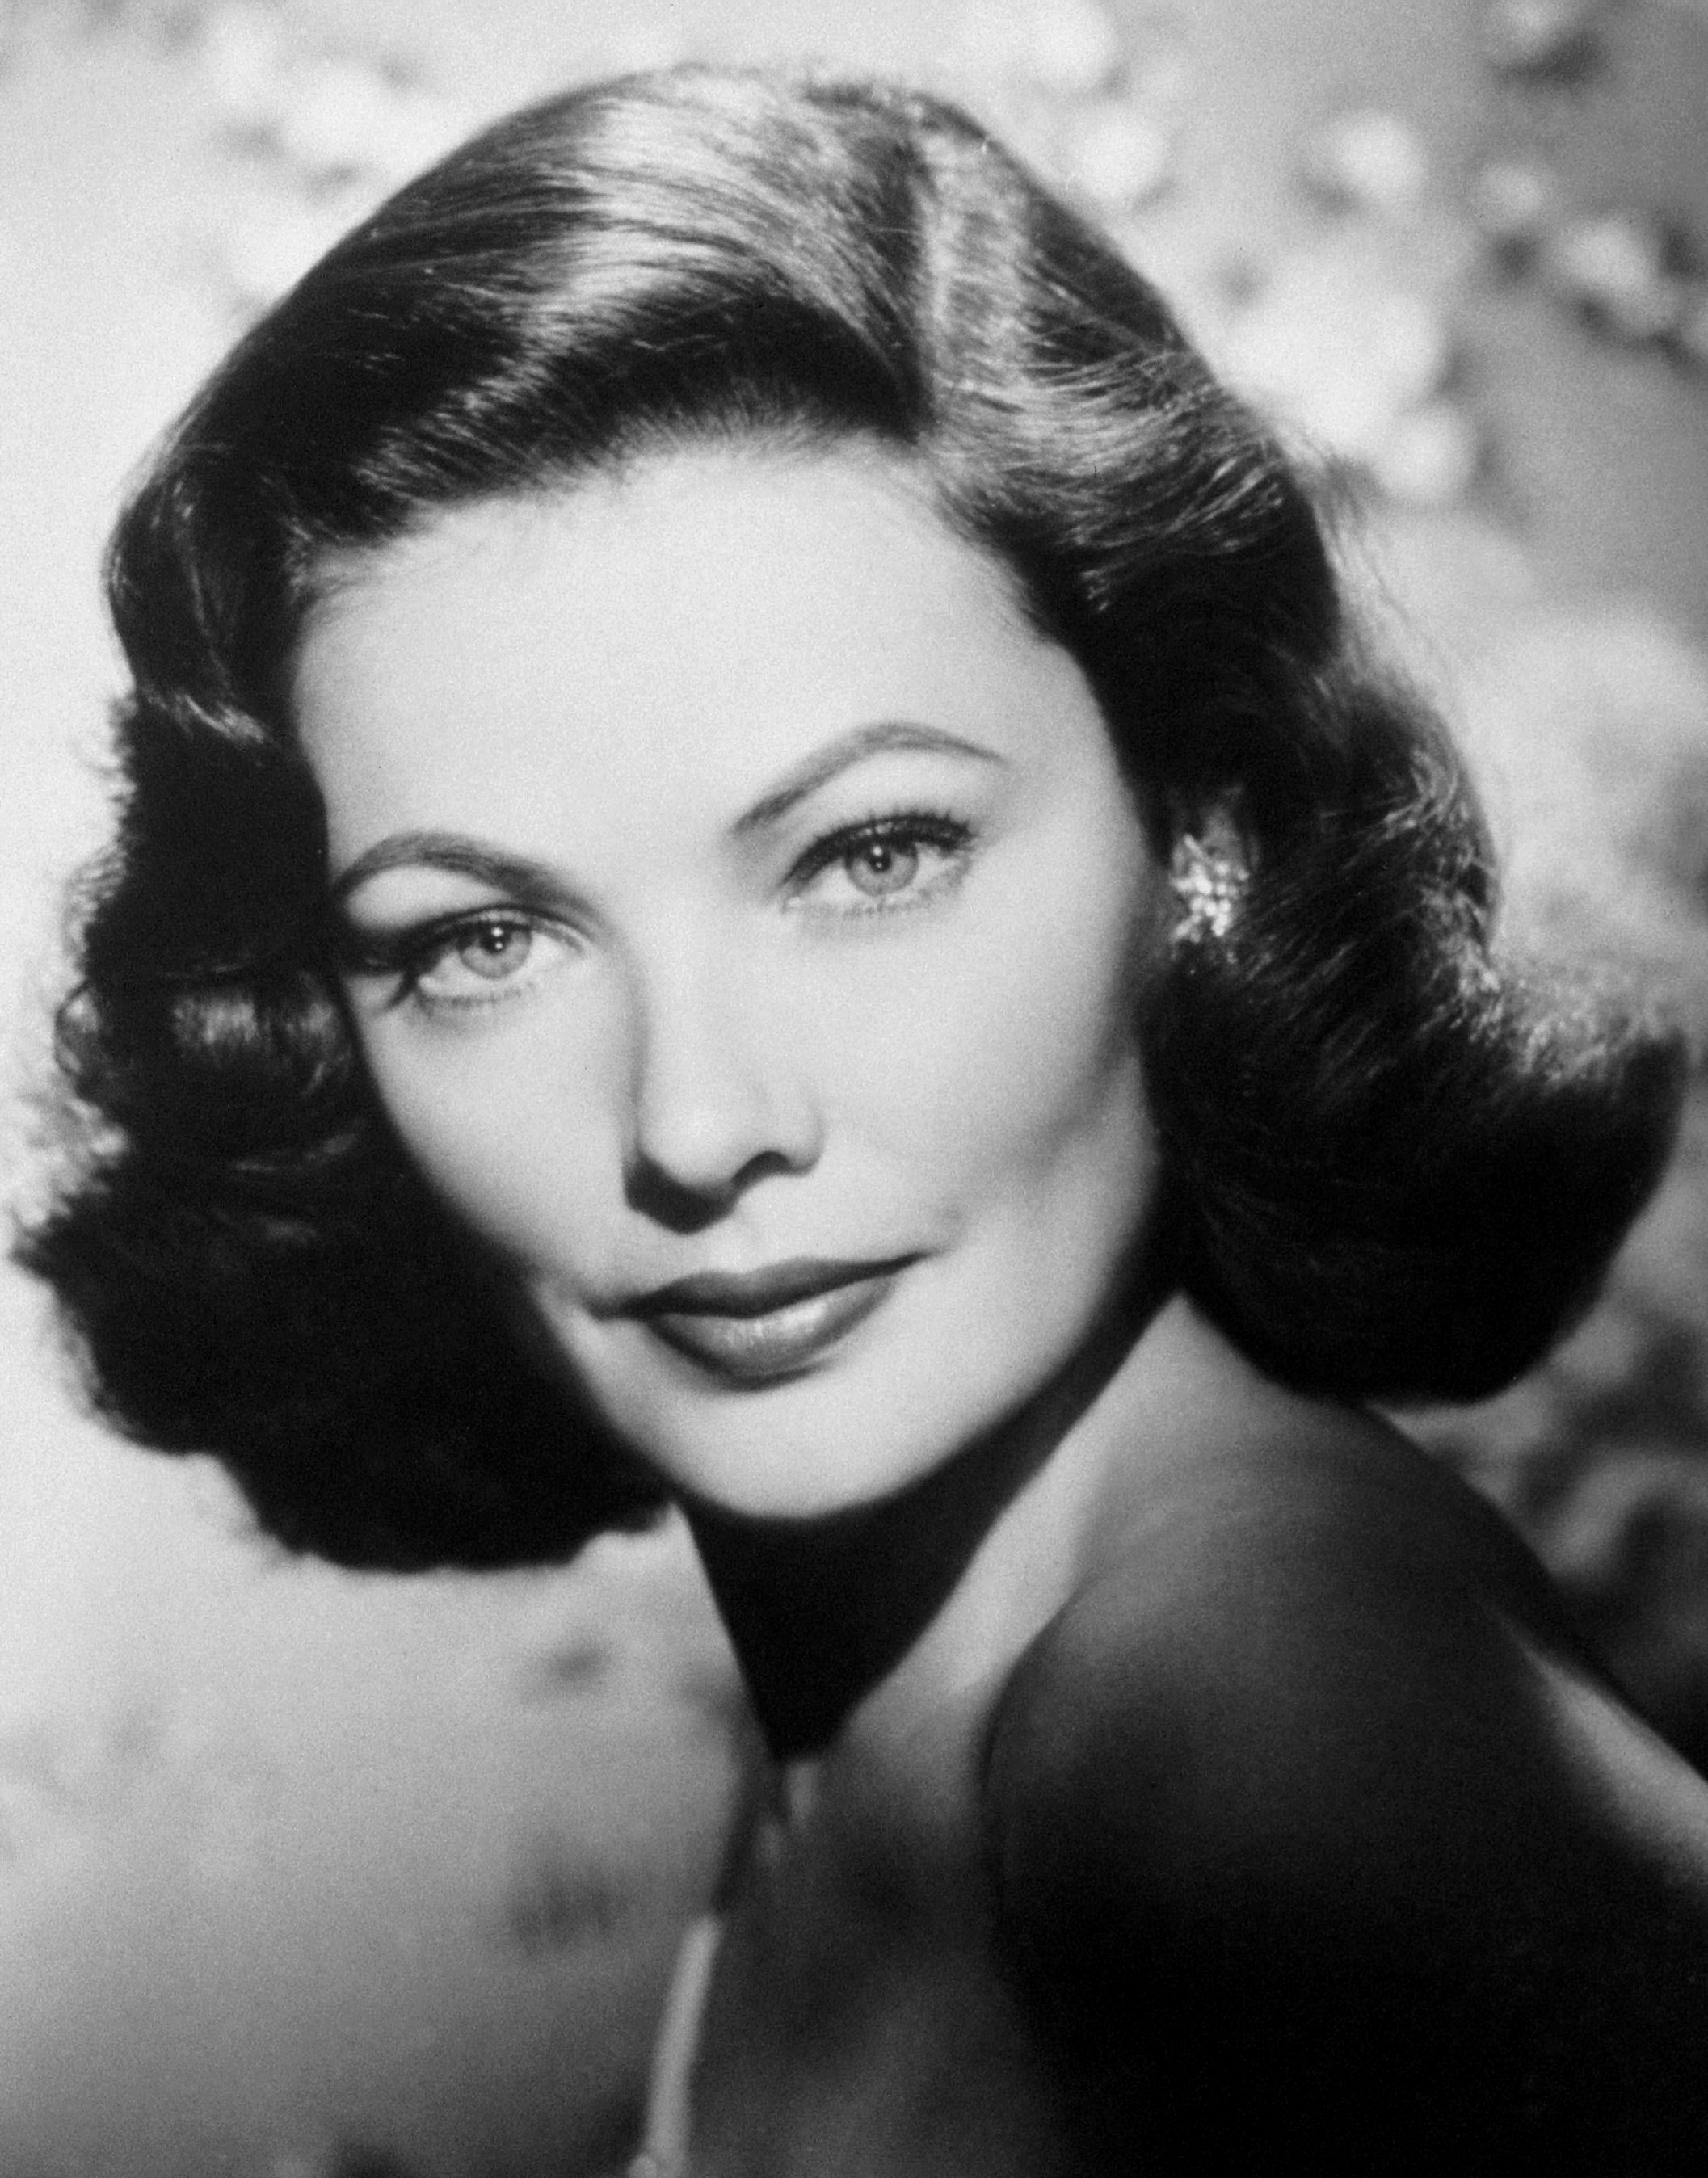 HQ Gene Tierney Wallpapers | File 1483.12Kb